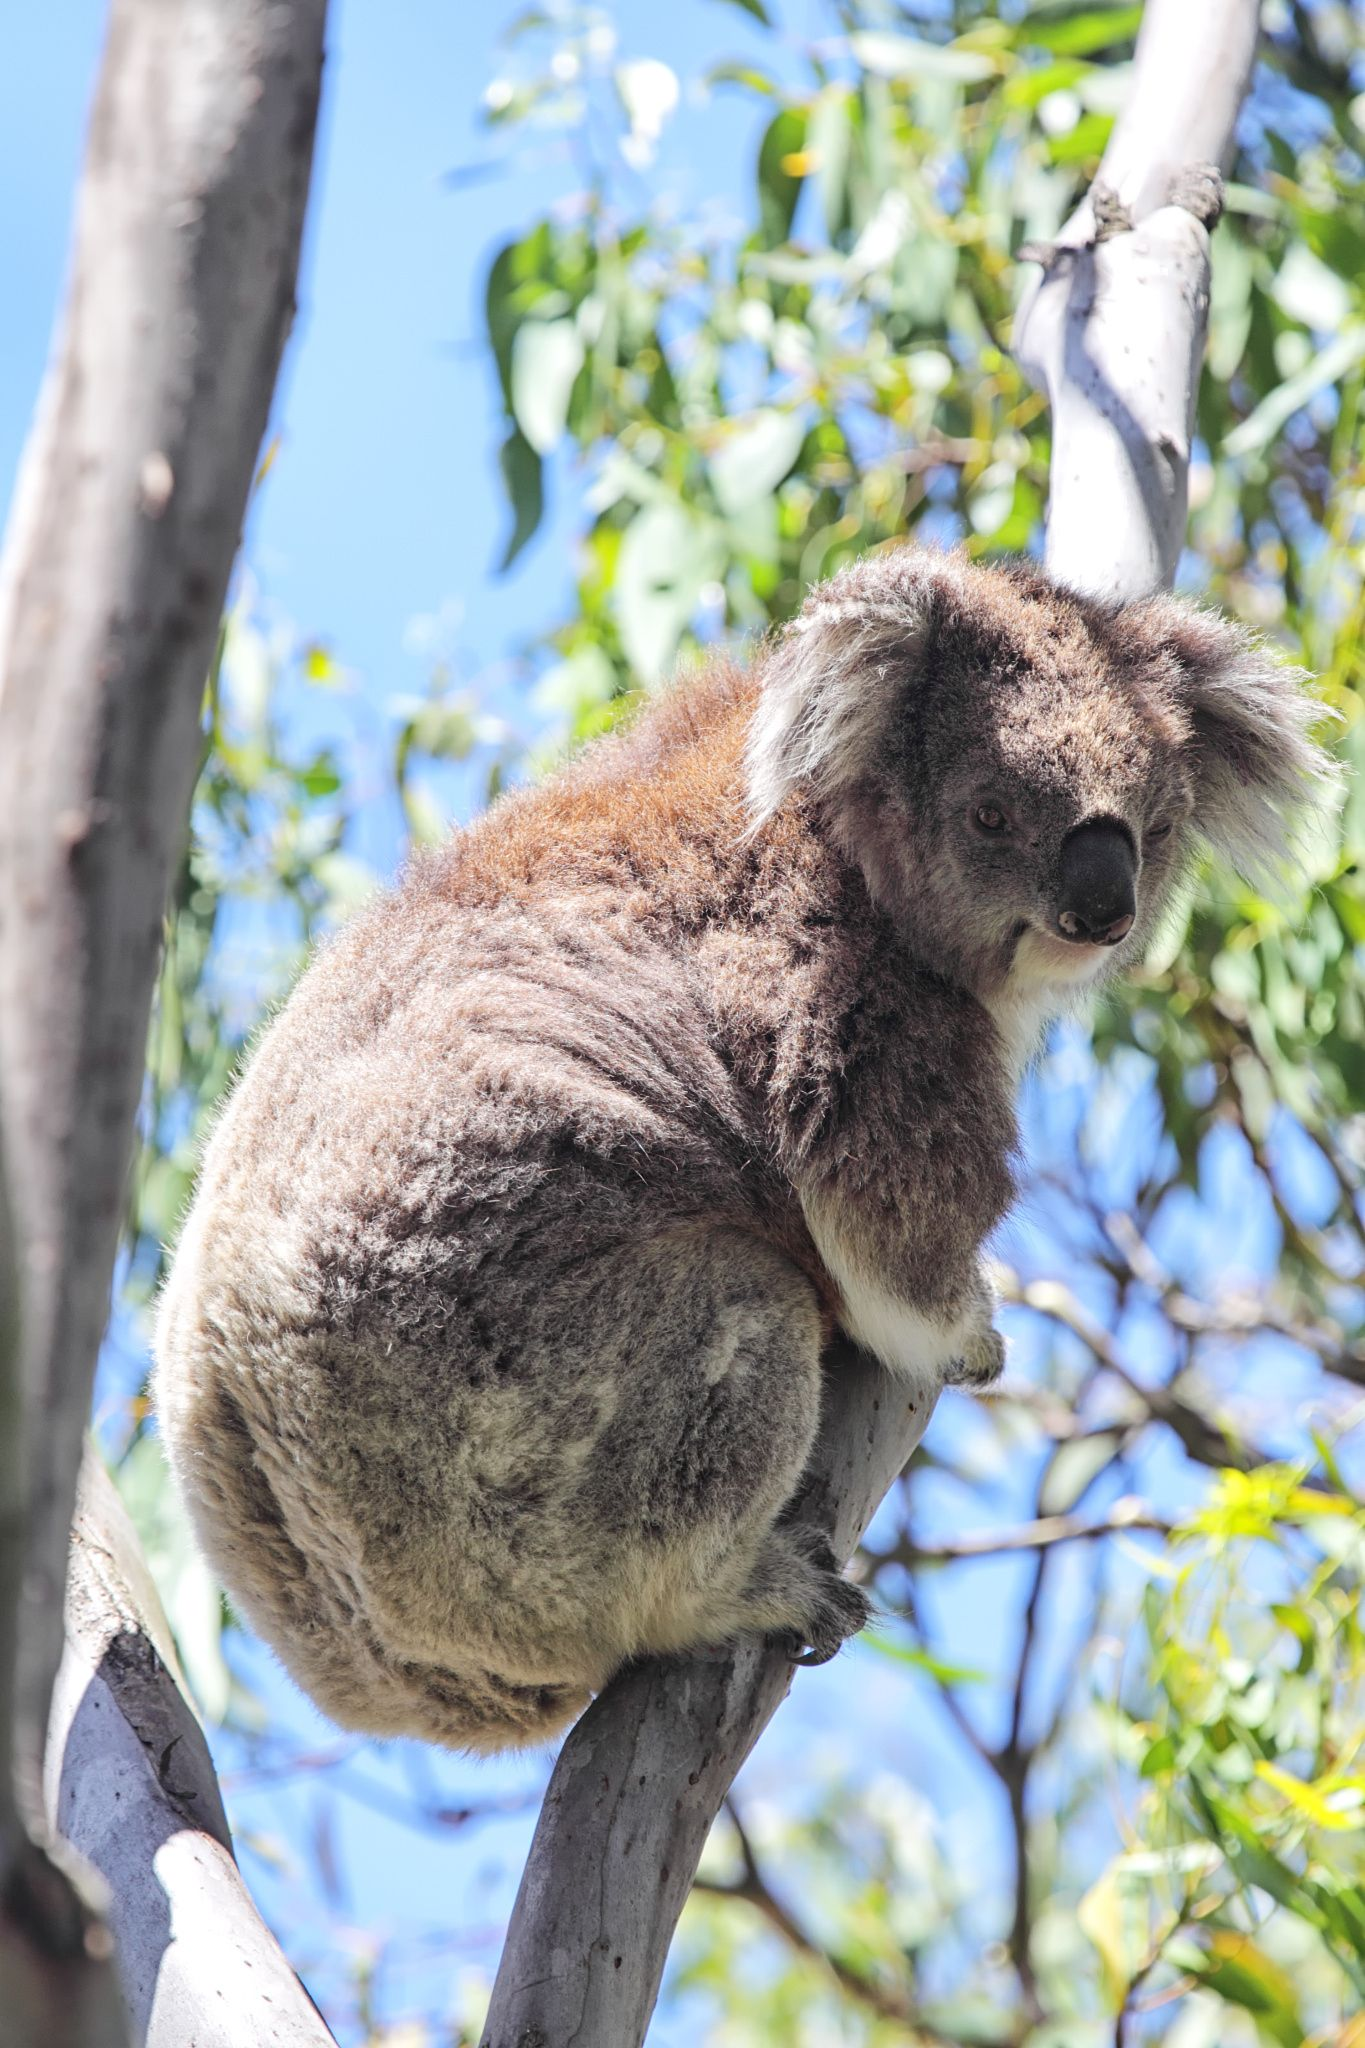 Koala (Phascolarctos cinereus) climbing on a eukalypt tree on Raymond Island in Lake King, Victoria, Australia.